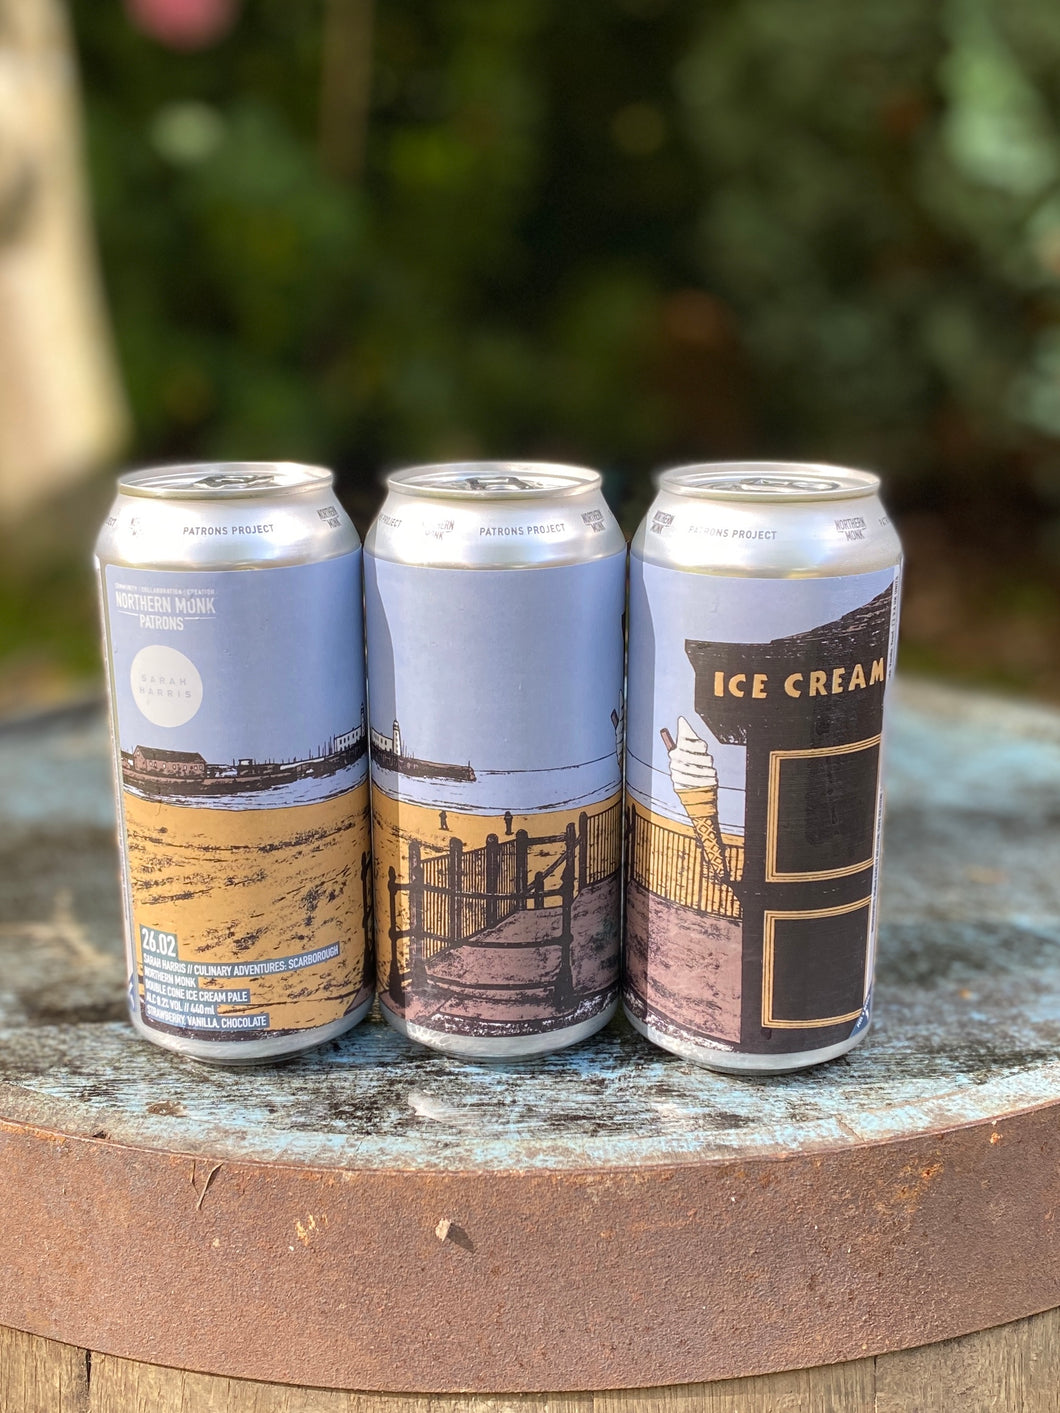 Northern Monk - Patrons Project 26.02 // Sarah Harris // Culinary Adventures Scarborough // Northern Monk // Double Cone Ice Cream Pale - 8.2% Milkshake IPA 440ml can